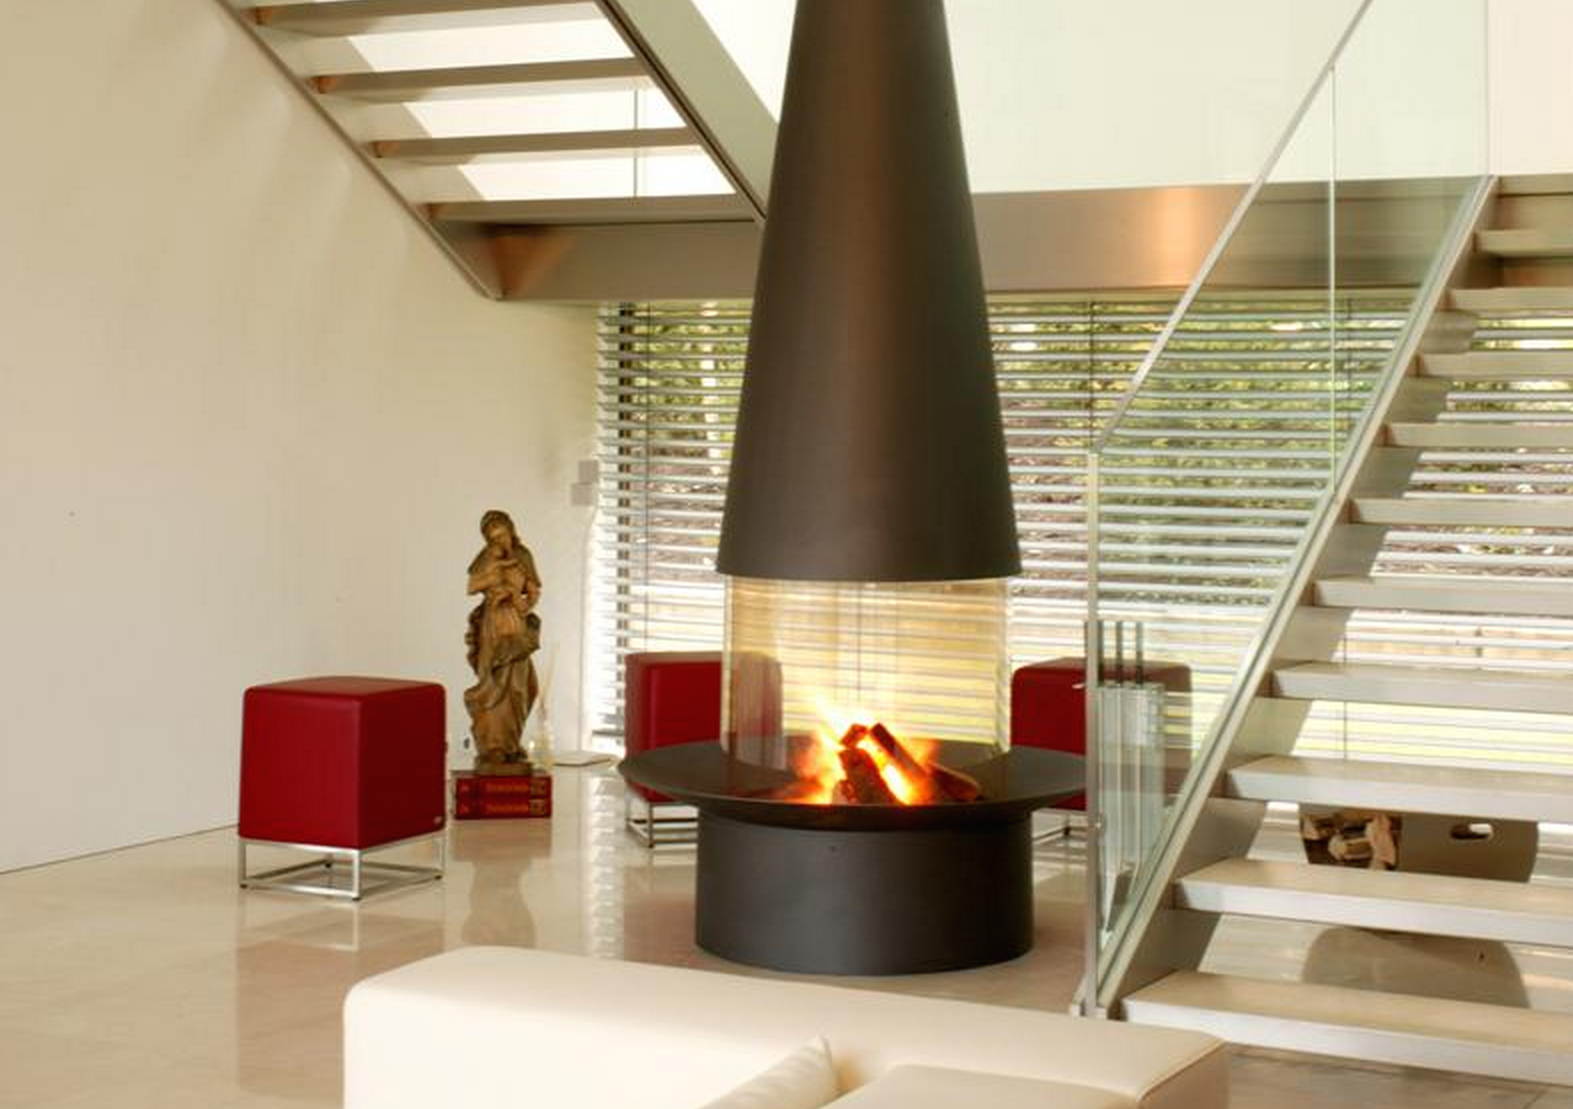 We will have circular natural wood fireplace